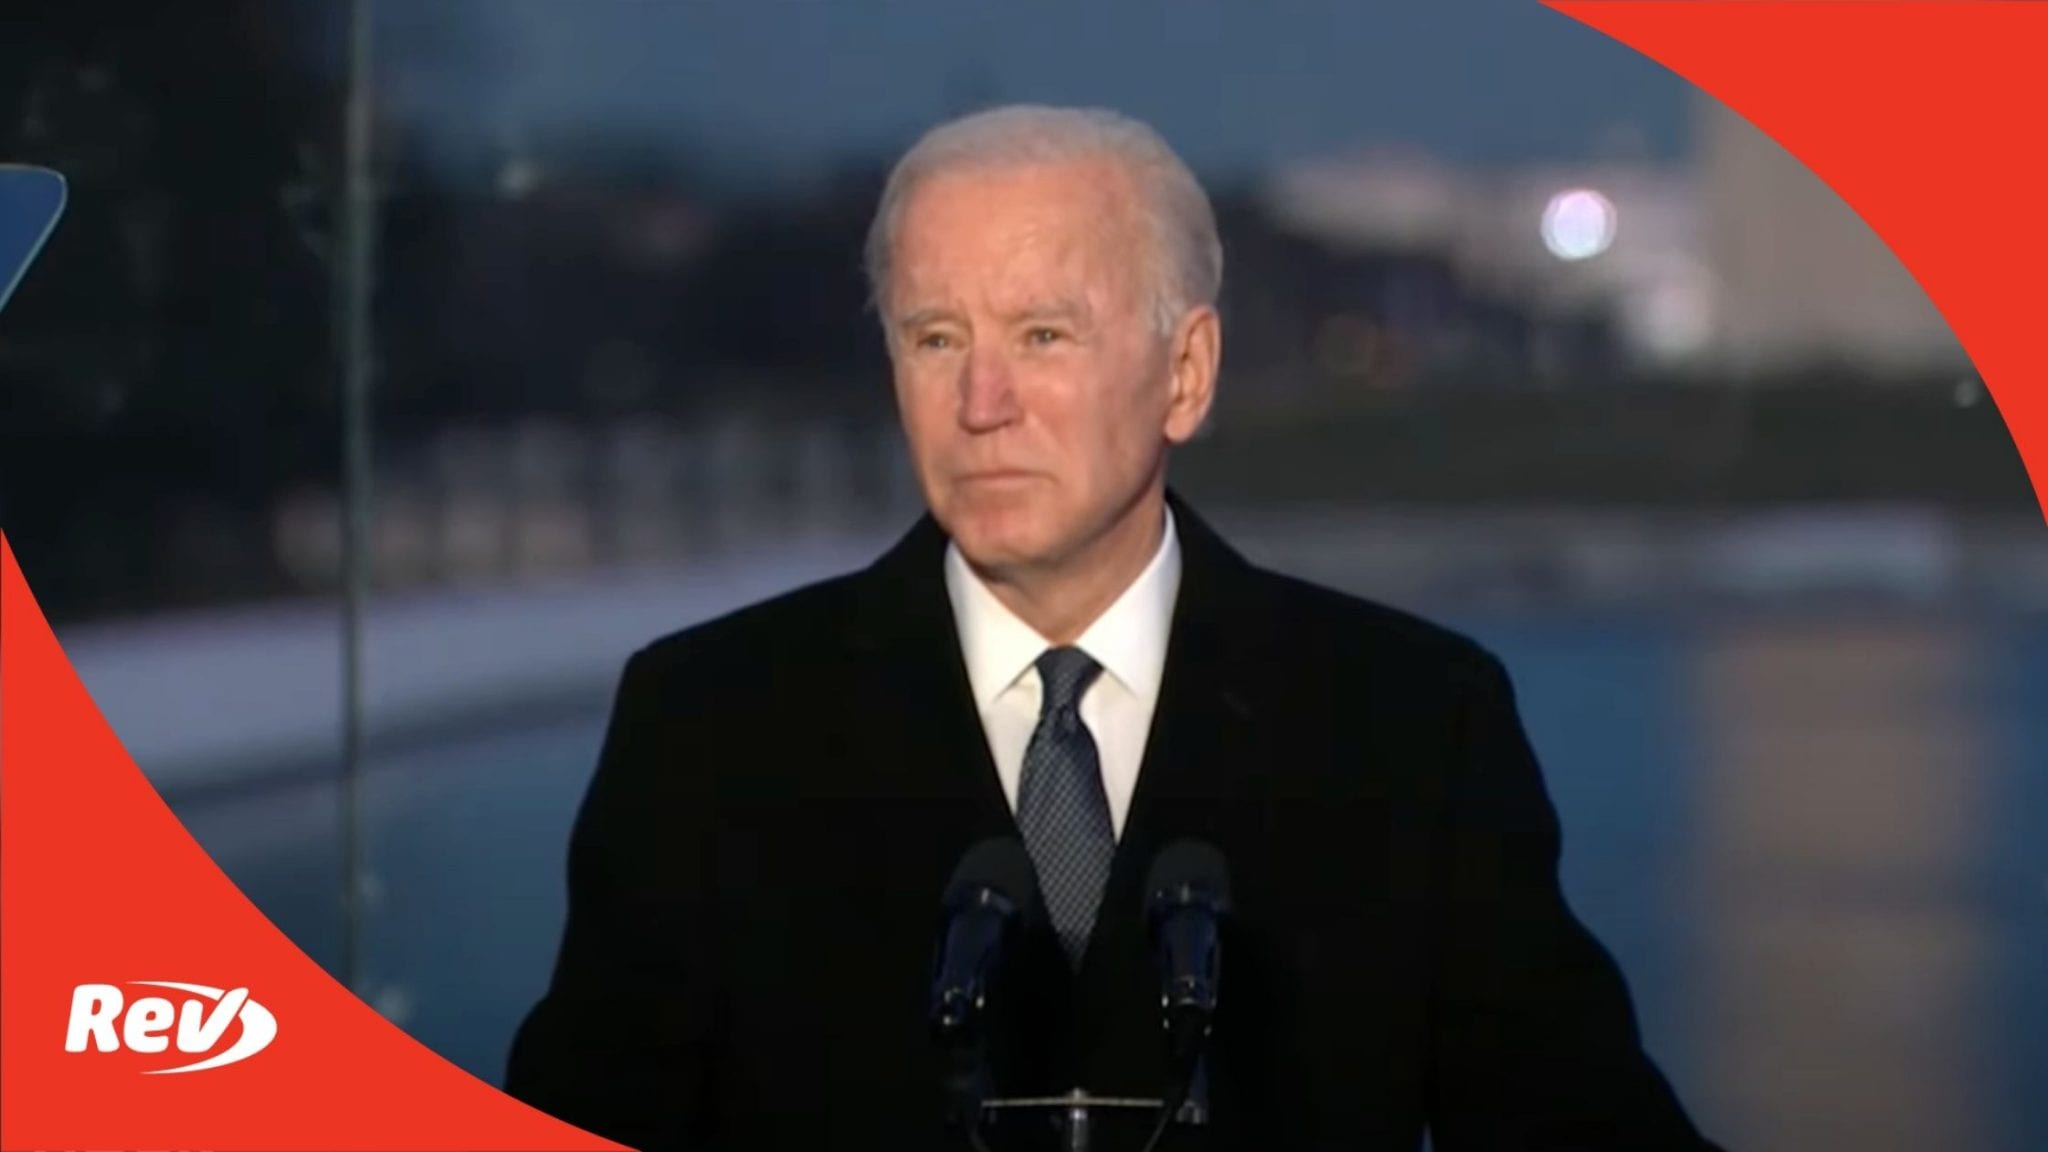 Biden & Harris speak at memorial to COVID-19